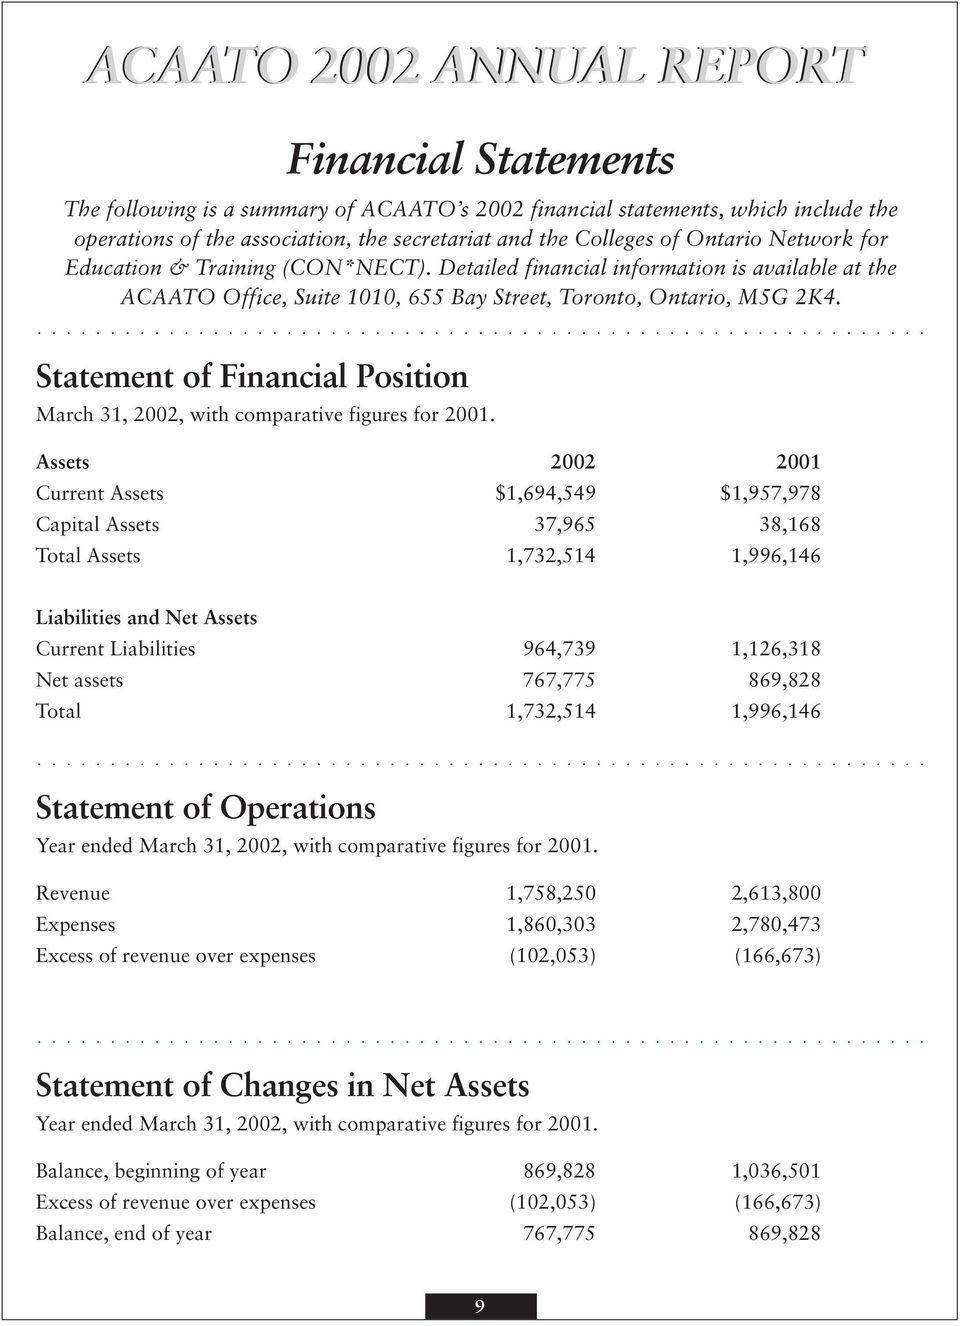 Statement of Financial Position March 31, 2002, with comparative figures for 2001.